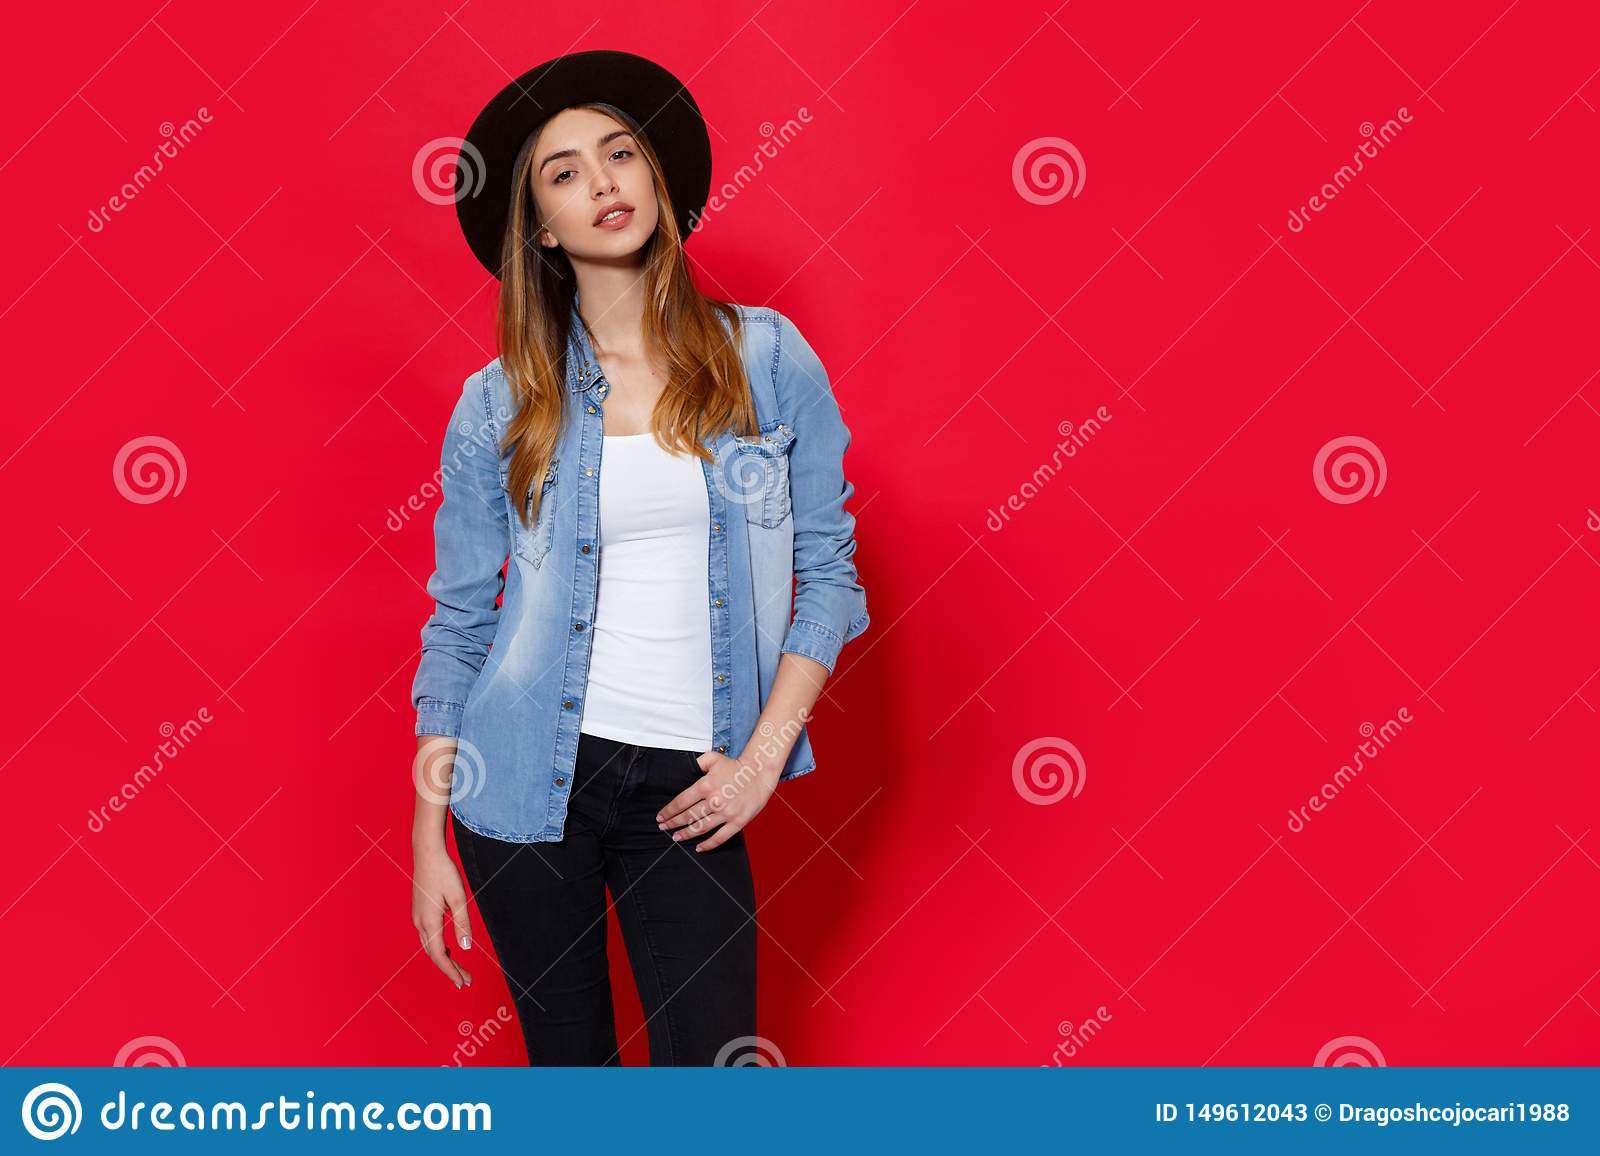 Close up indoor studio fashion portrait of gorgeous woman in stylish hat posing on bright red background. copy space.